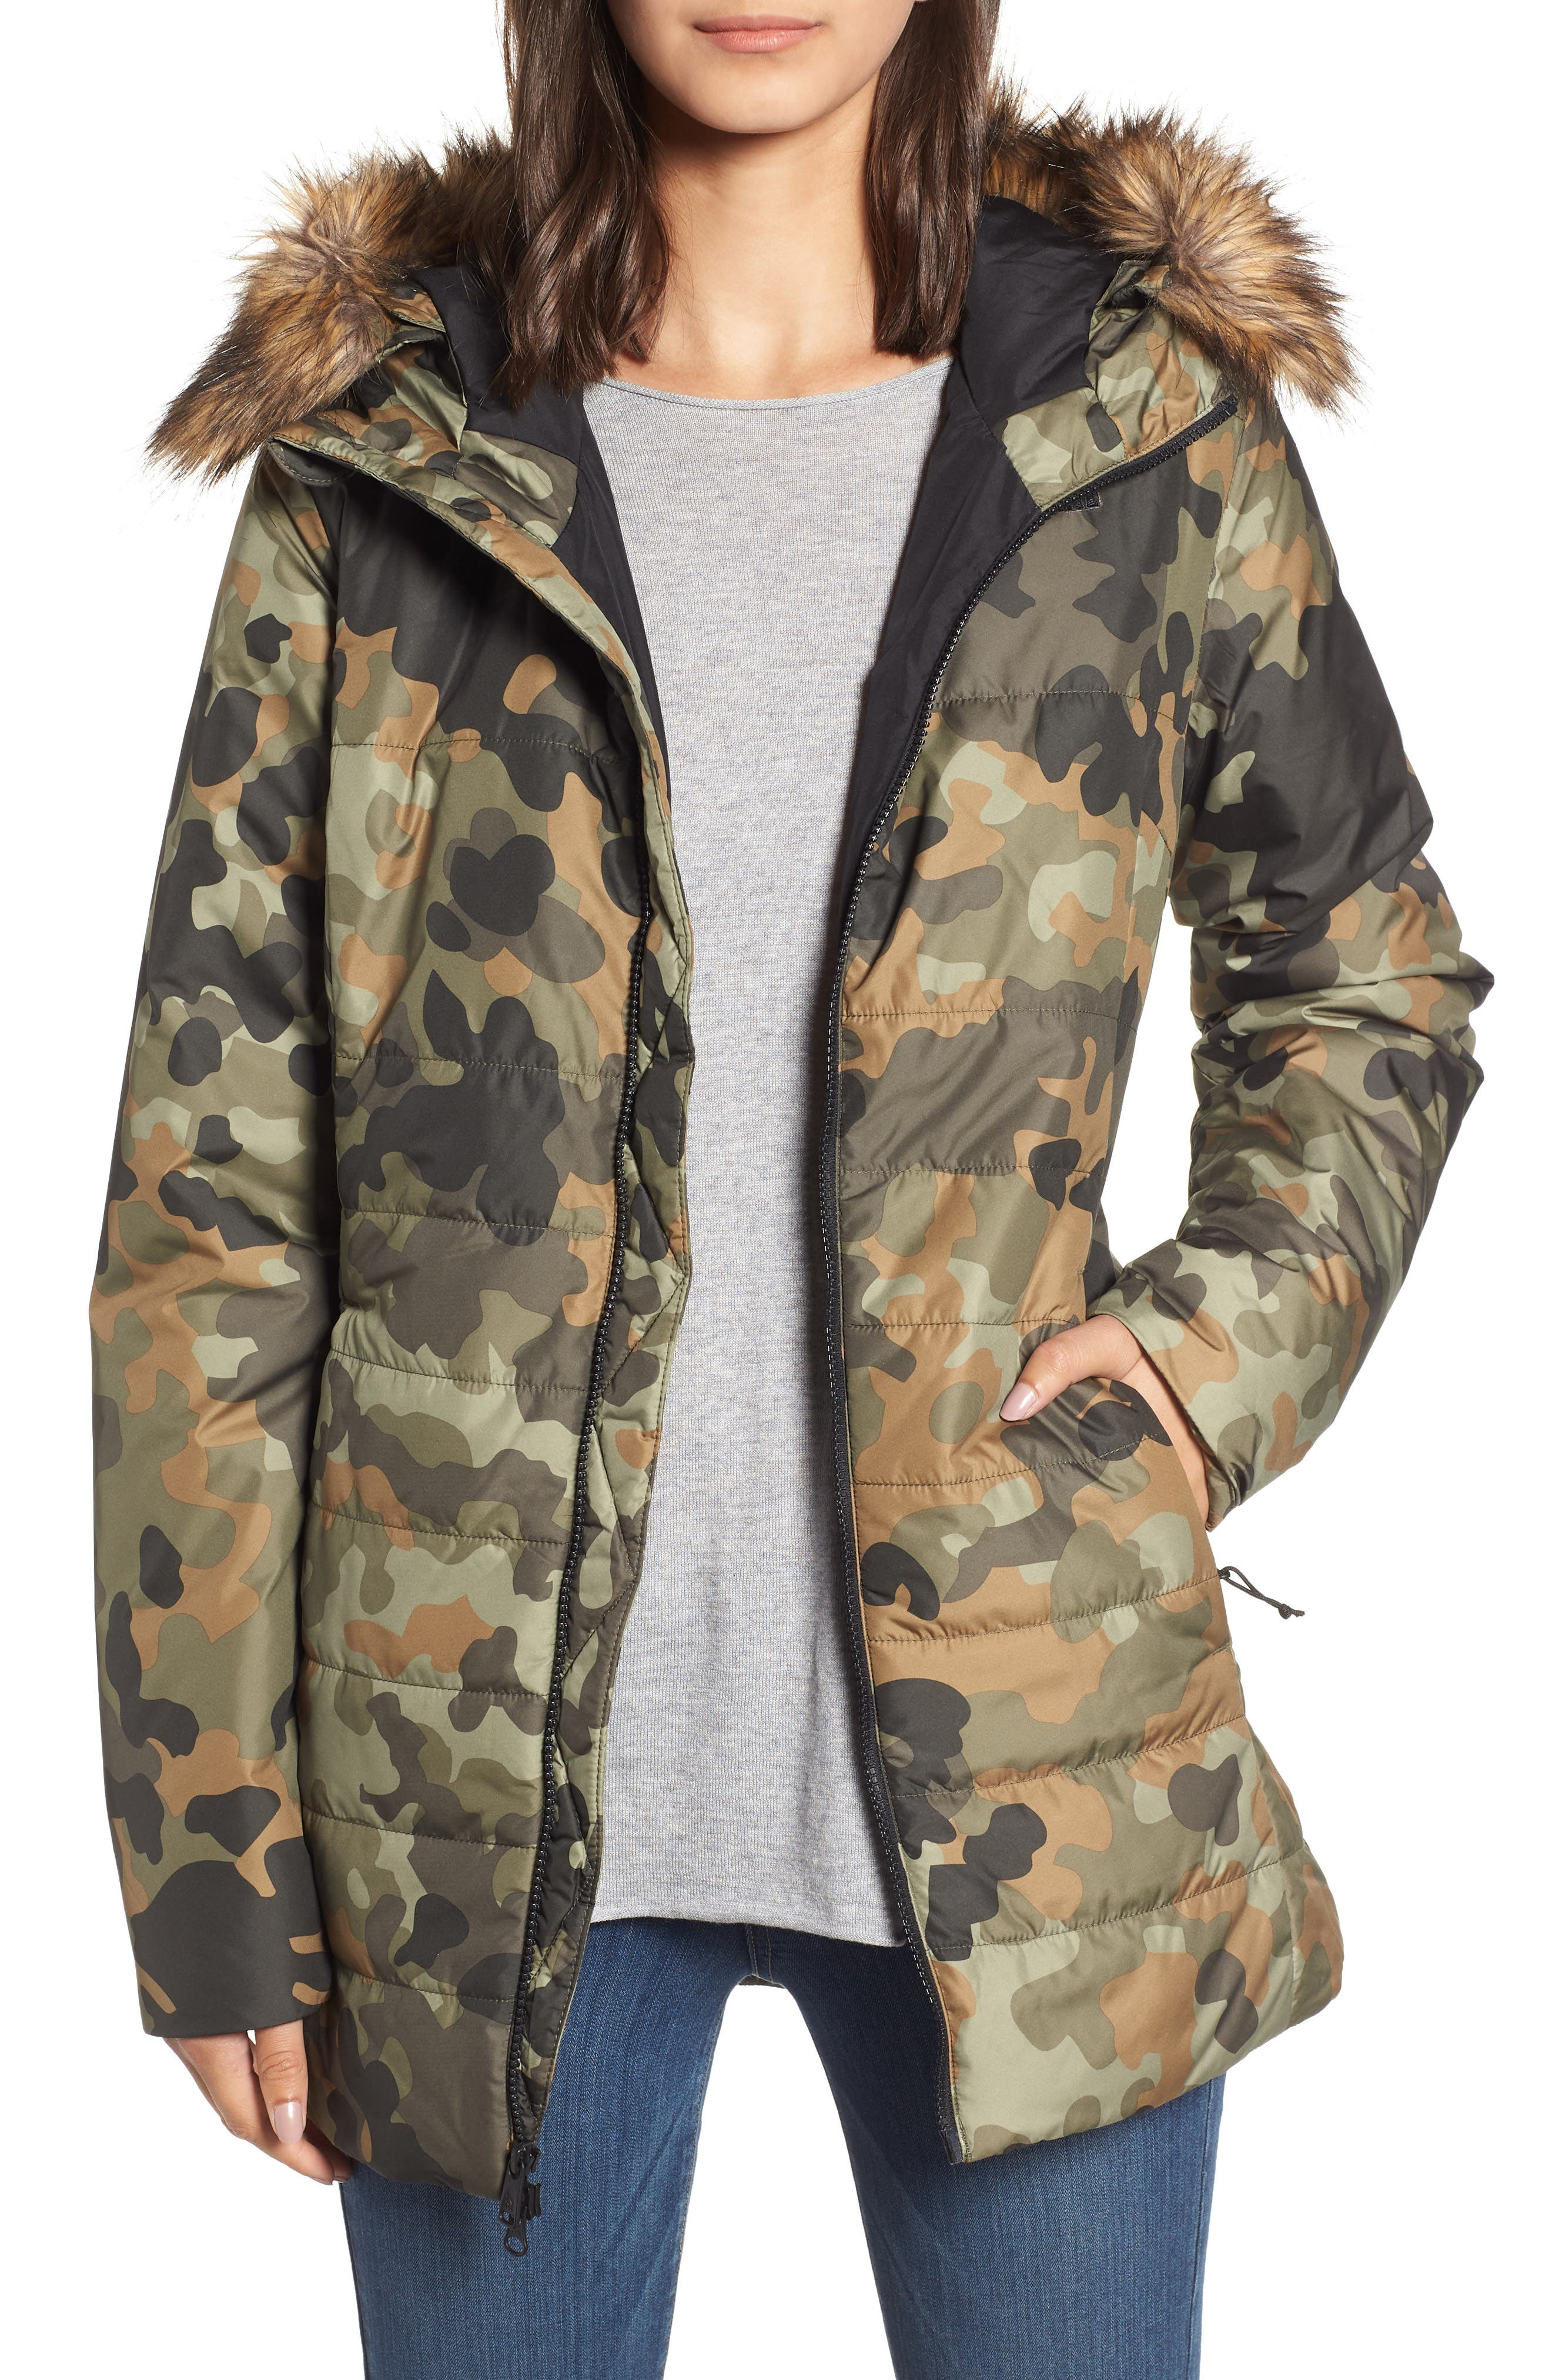 THE NORTH FACE Harway Heatseeker<sup>™</sup> Water-Resistant Jacket with Faux Fur Trim, Main, color, NEW TAUPE GREEN MACROFLECK